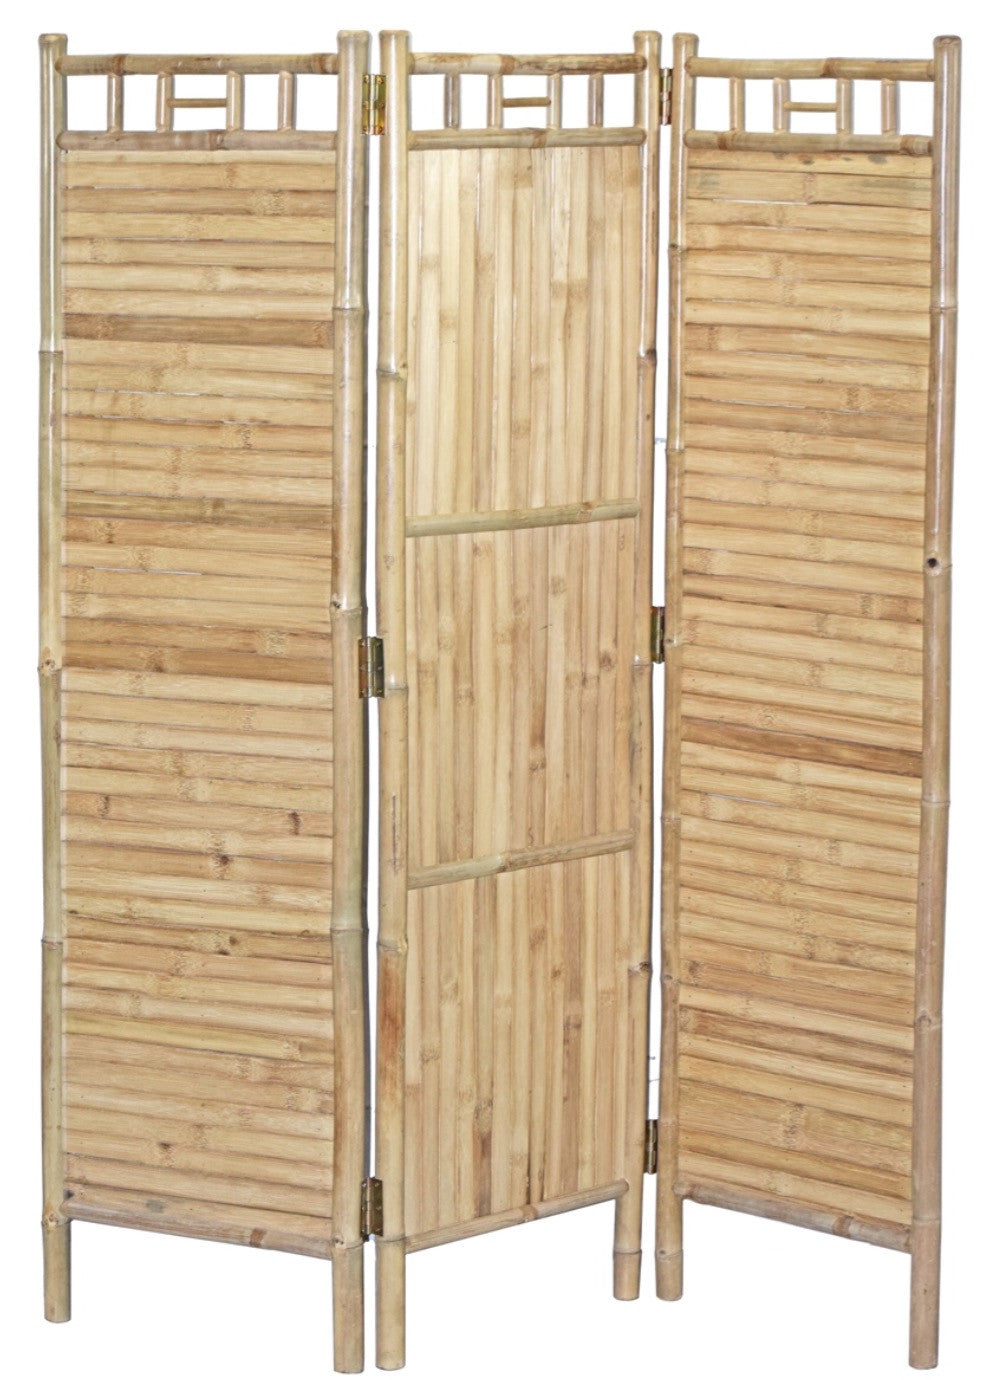 Bamboo Screen 3 Panel Flat Bamboo